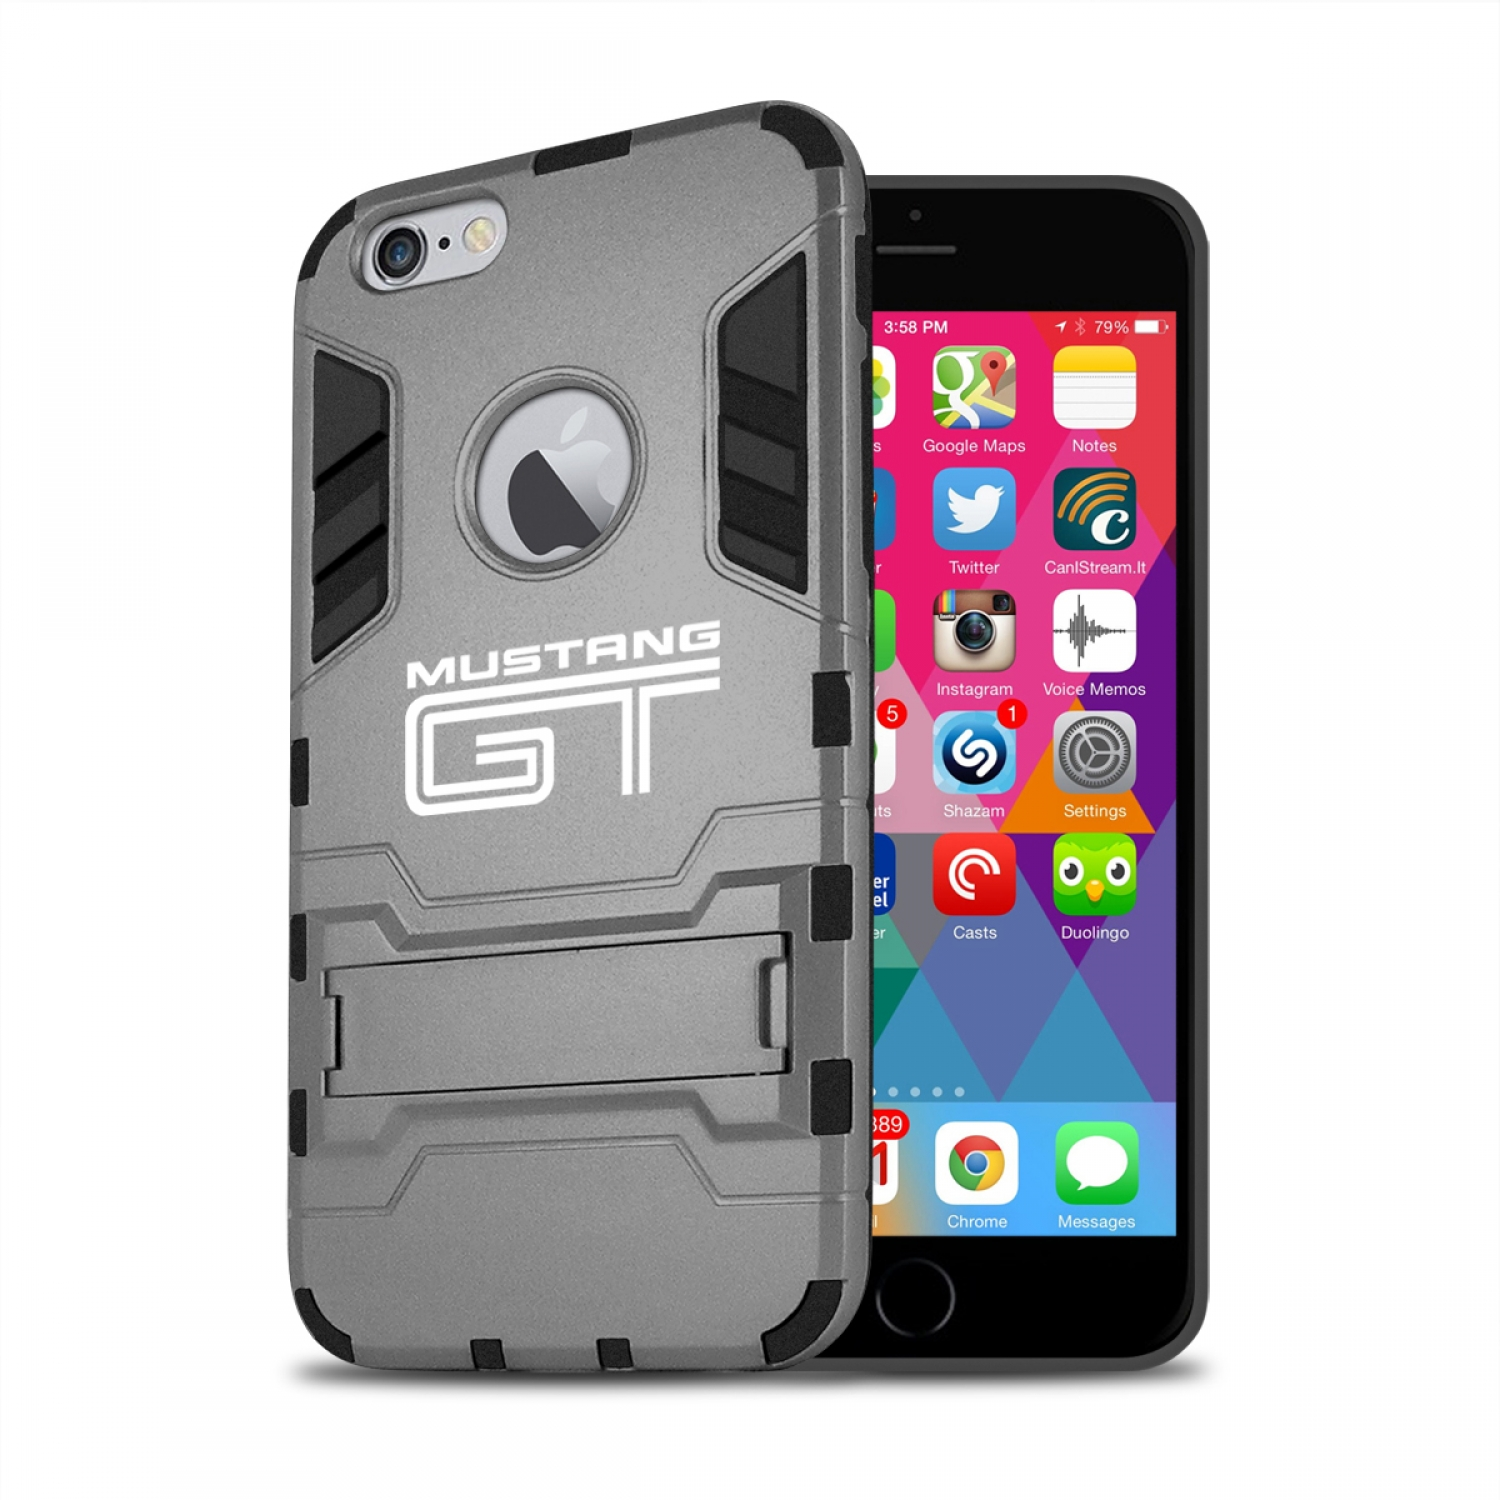 Ford Mustang GT iPhone 6 6s Shockproof TPU ABS Hybrid Dark Gray Phone Case